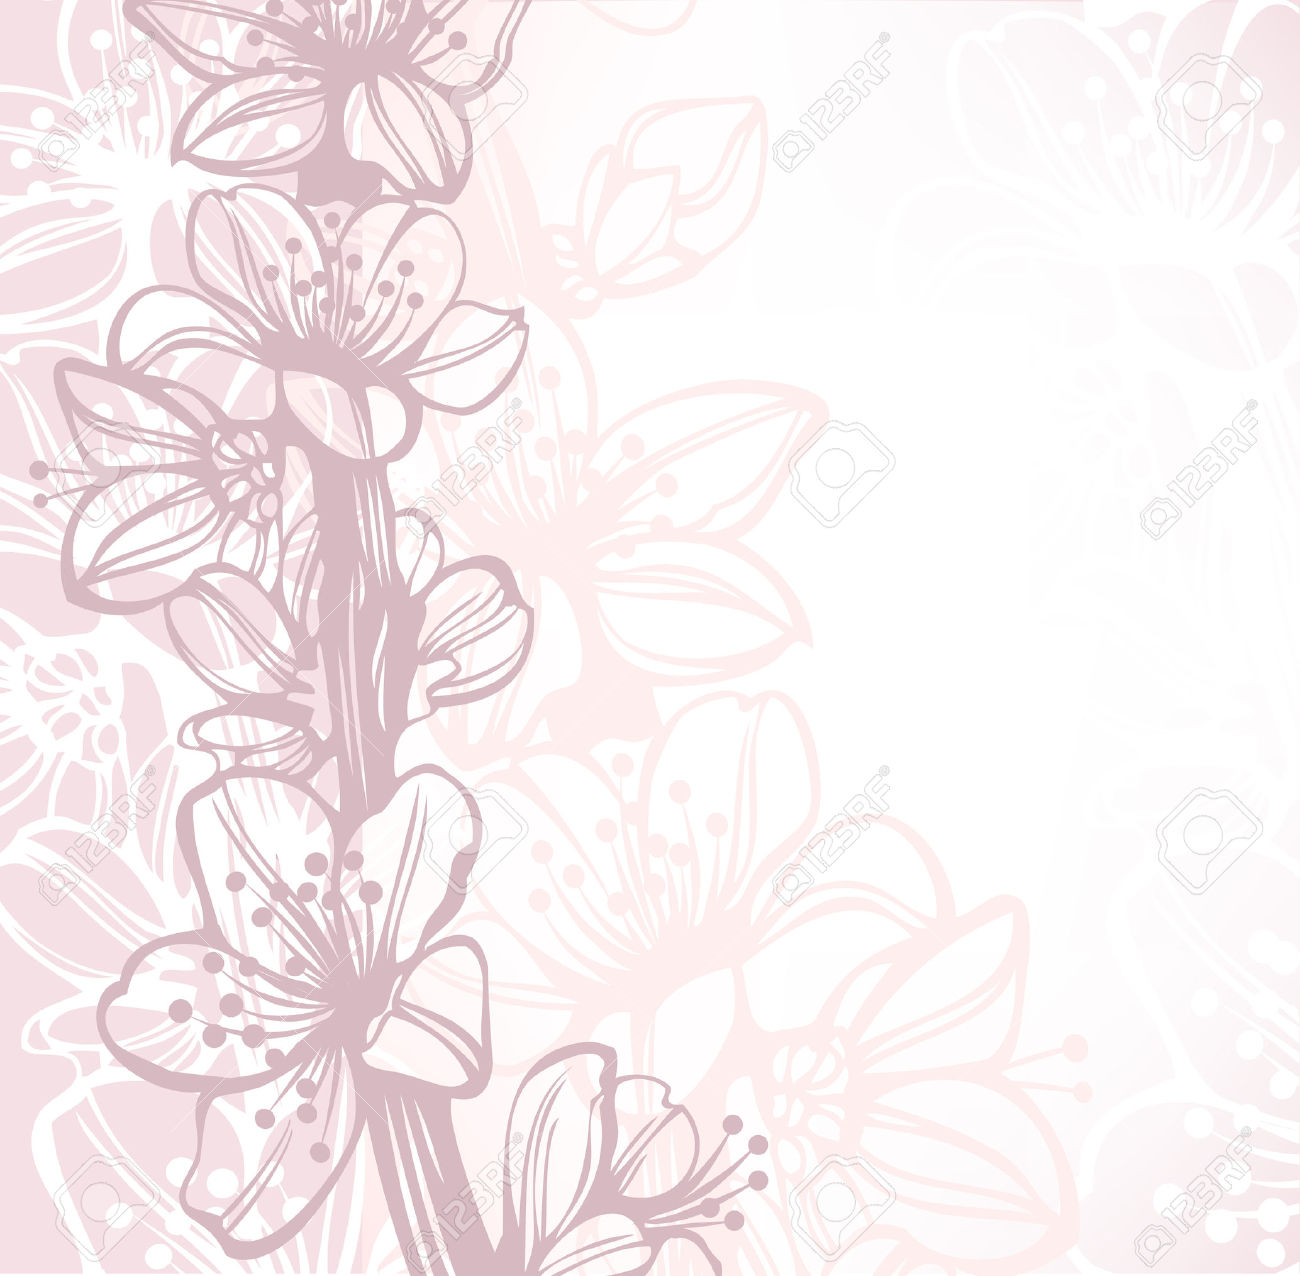 3d Live Wallpaper For Iphone 4s Download Wedding Card Background Wallpaper Gallery